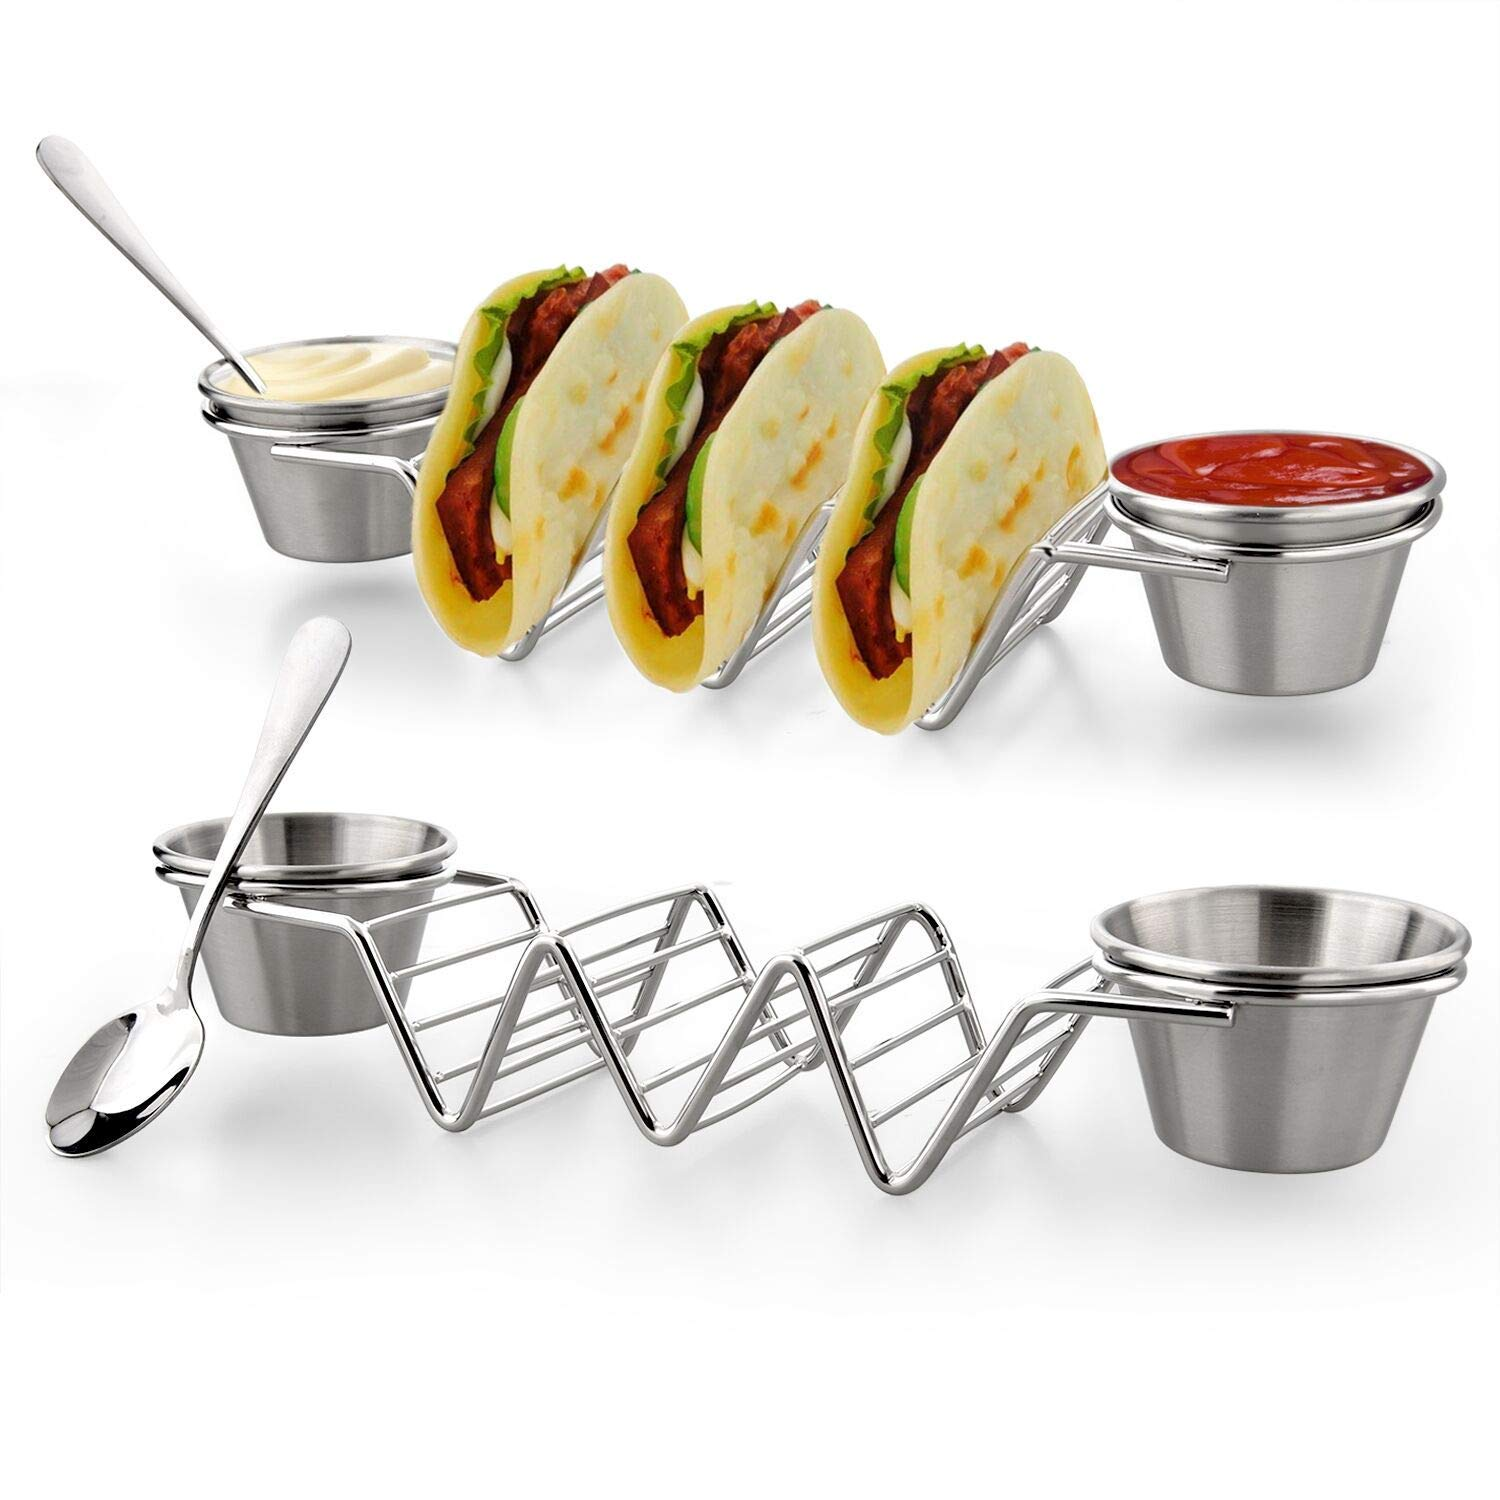 Upgrade Taco Shell Stand Up Holder - 2 Pack Premium Stainless Steel Taco Tray with 4 Salad Cups & 2 Spoons,Holds 3 Tacos Each Keeping Shells Upright & Neat